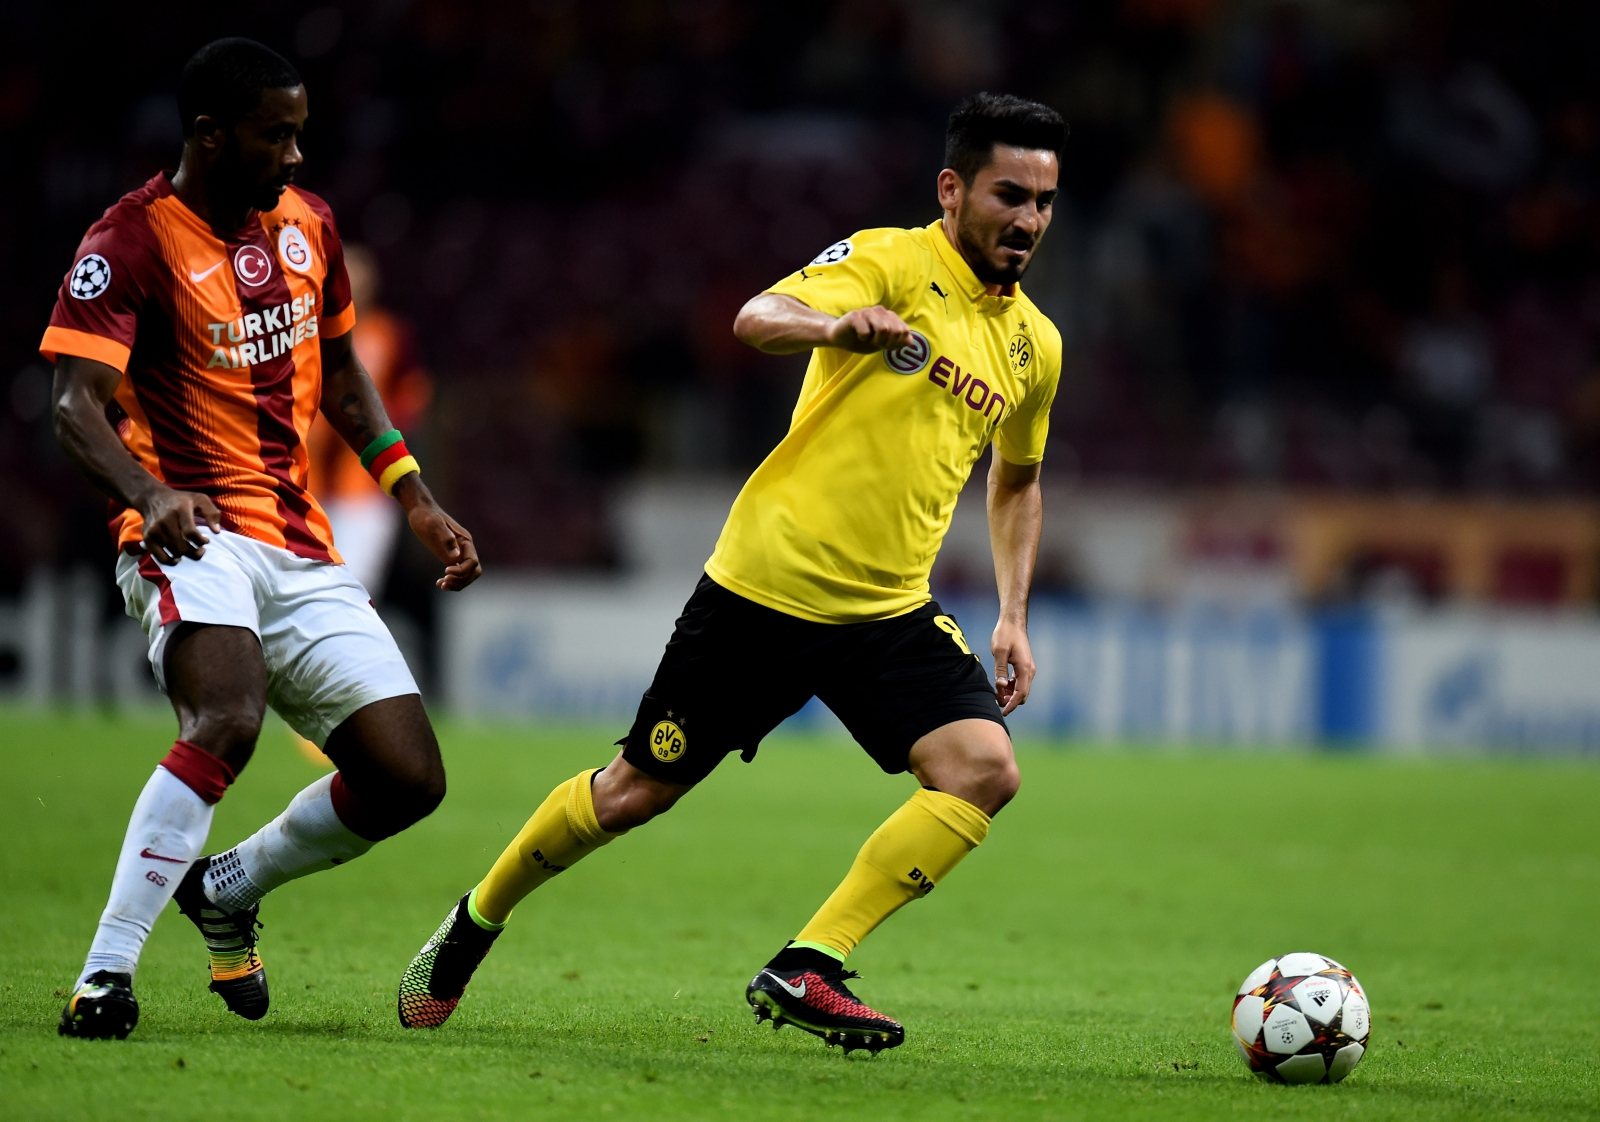 Arsenal submit £15.6m bid to sign Borussia Dortmund midfielder Ilkay Gundogan